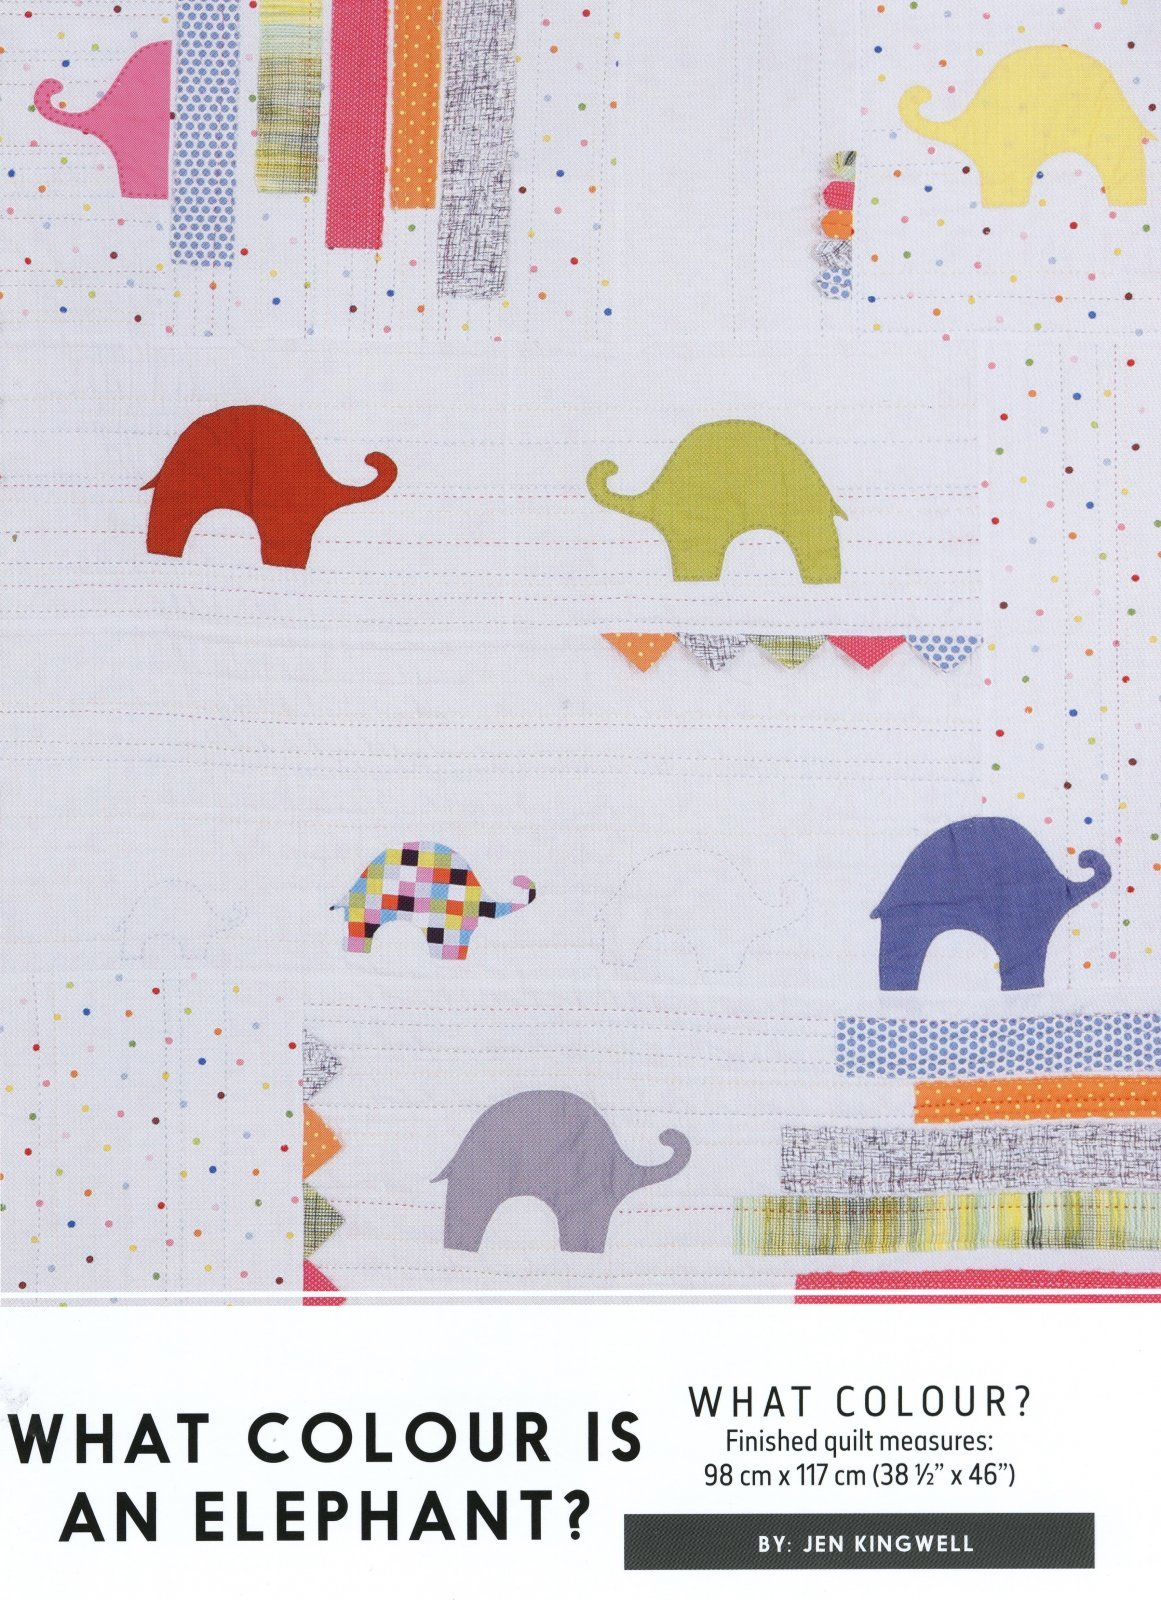 What Colour is an Elephant? Pattern by Jen Kingwell